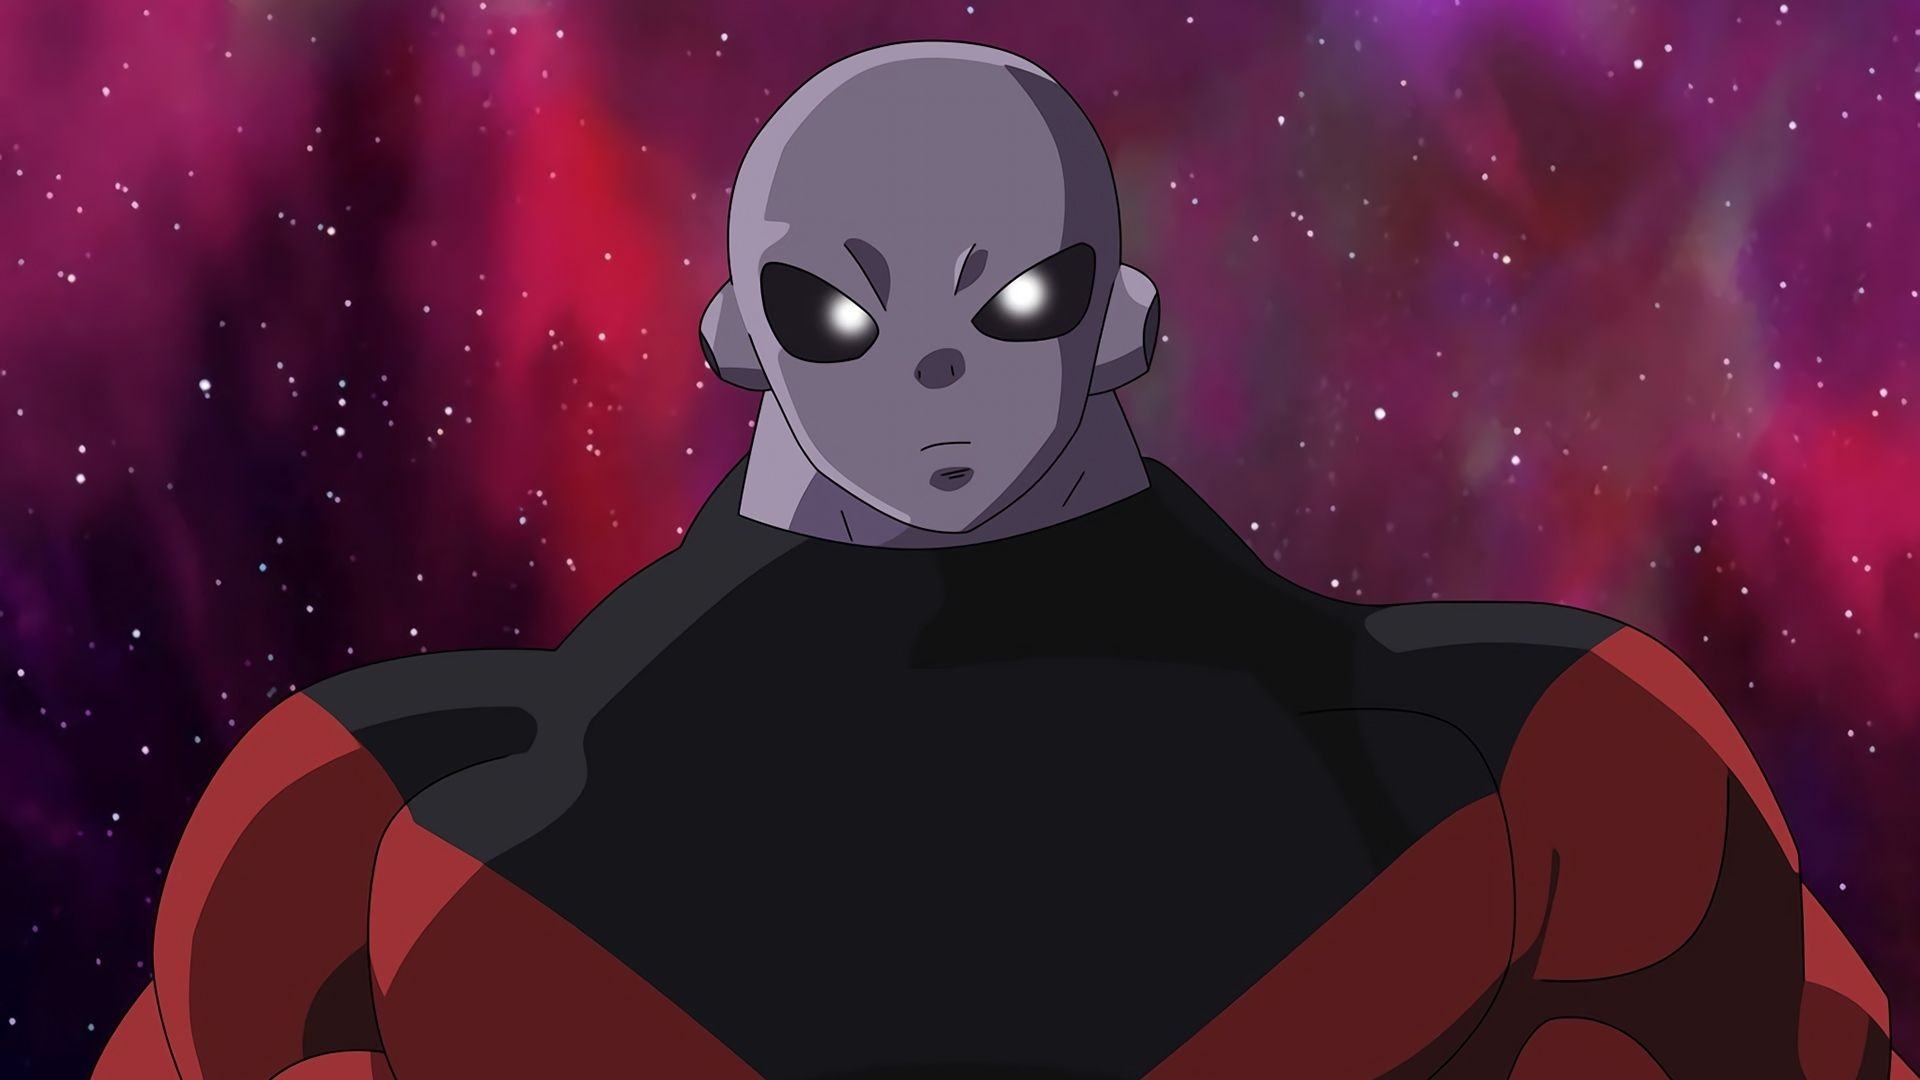 Jiren 4K Wallpapers - Top Free Jiren 4K Backgrounds ...